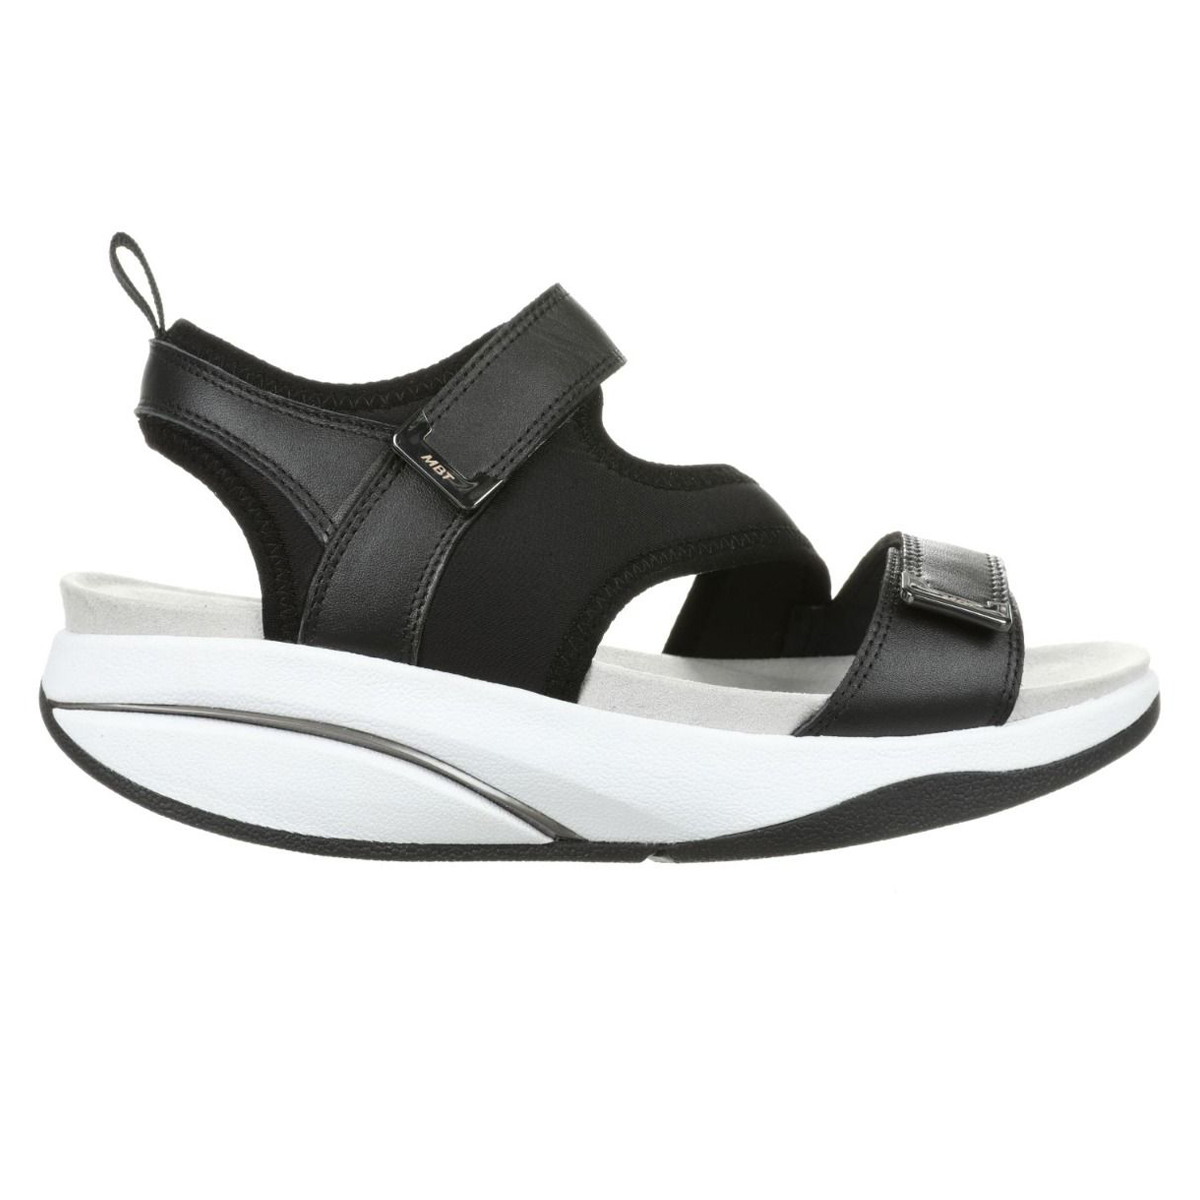 AZA-Women's-Casual-Sandals-in-Black